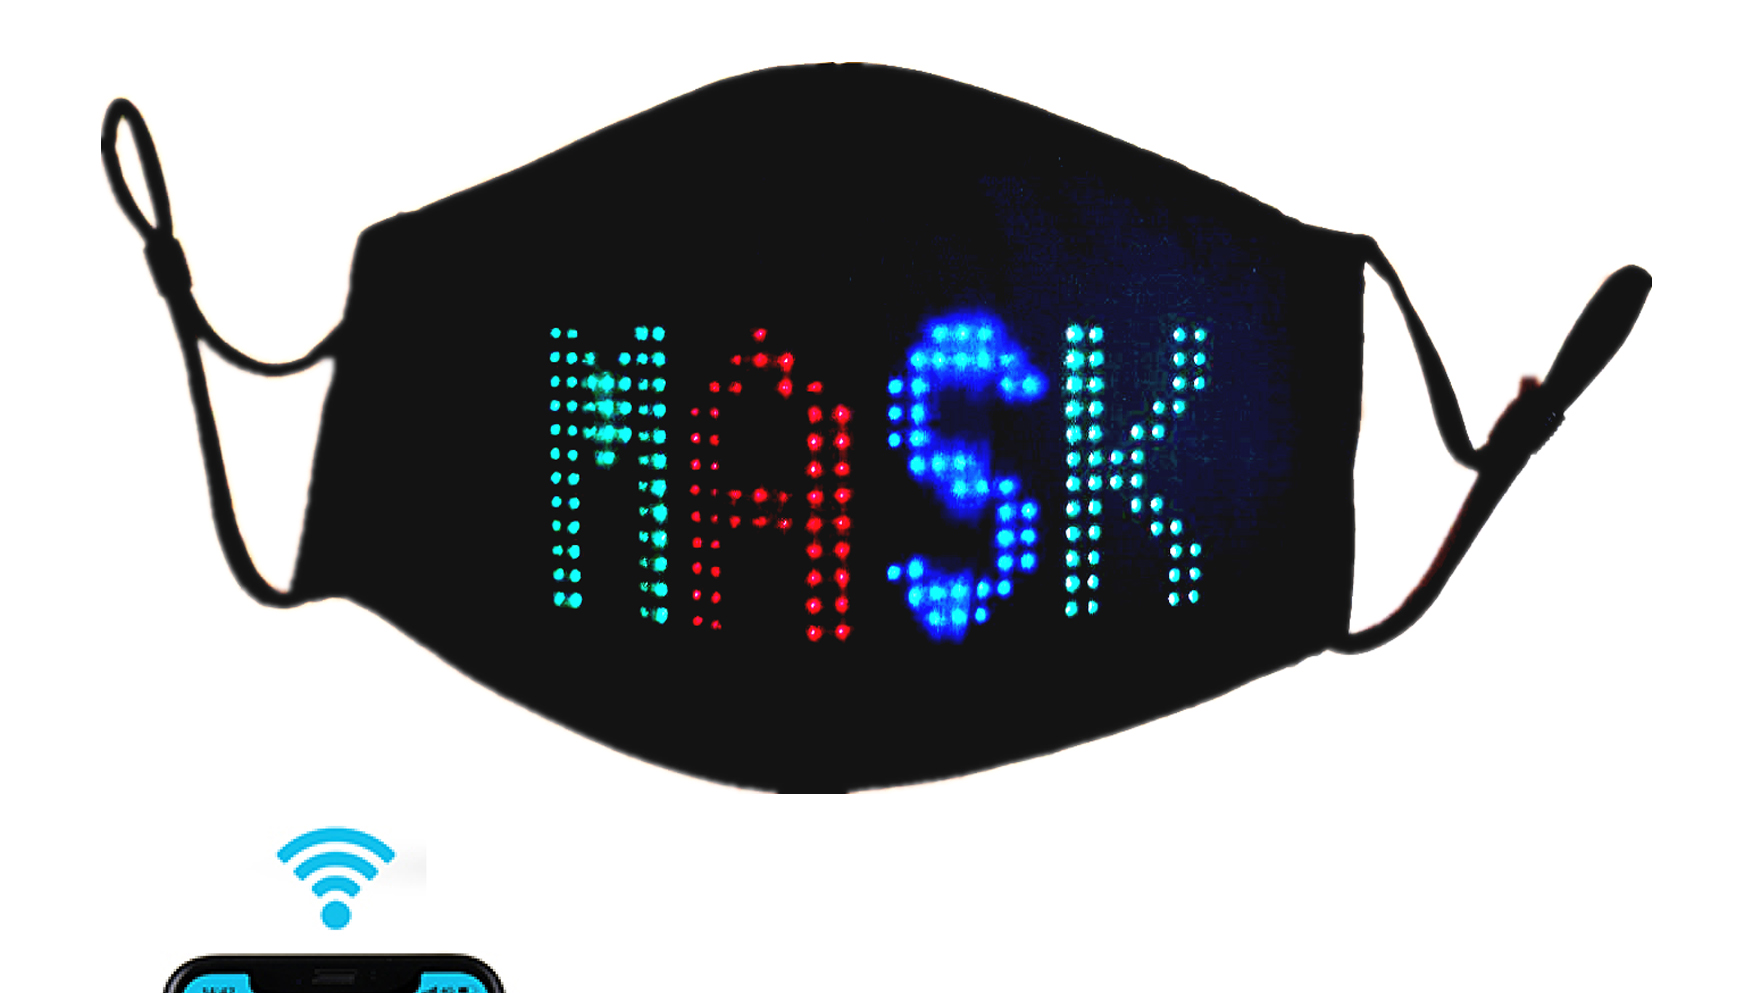 Large Screen RGB Bluetooth APP Programmable LED Display Maskes for Halloween New Year Concerts Festivals Party Masquerade